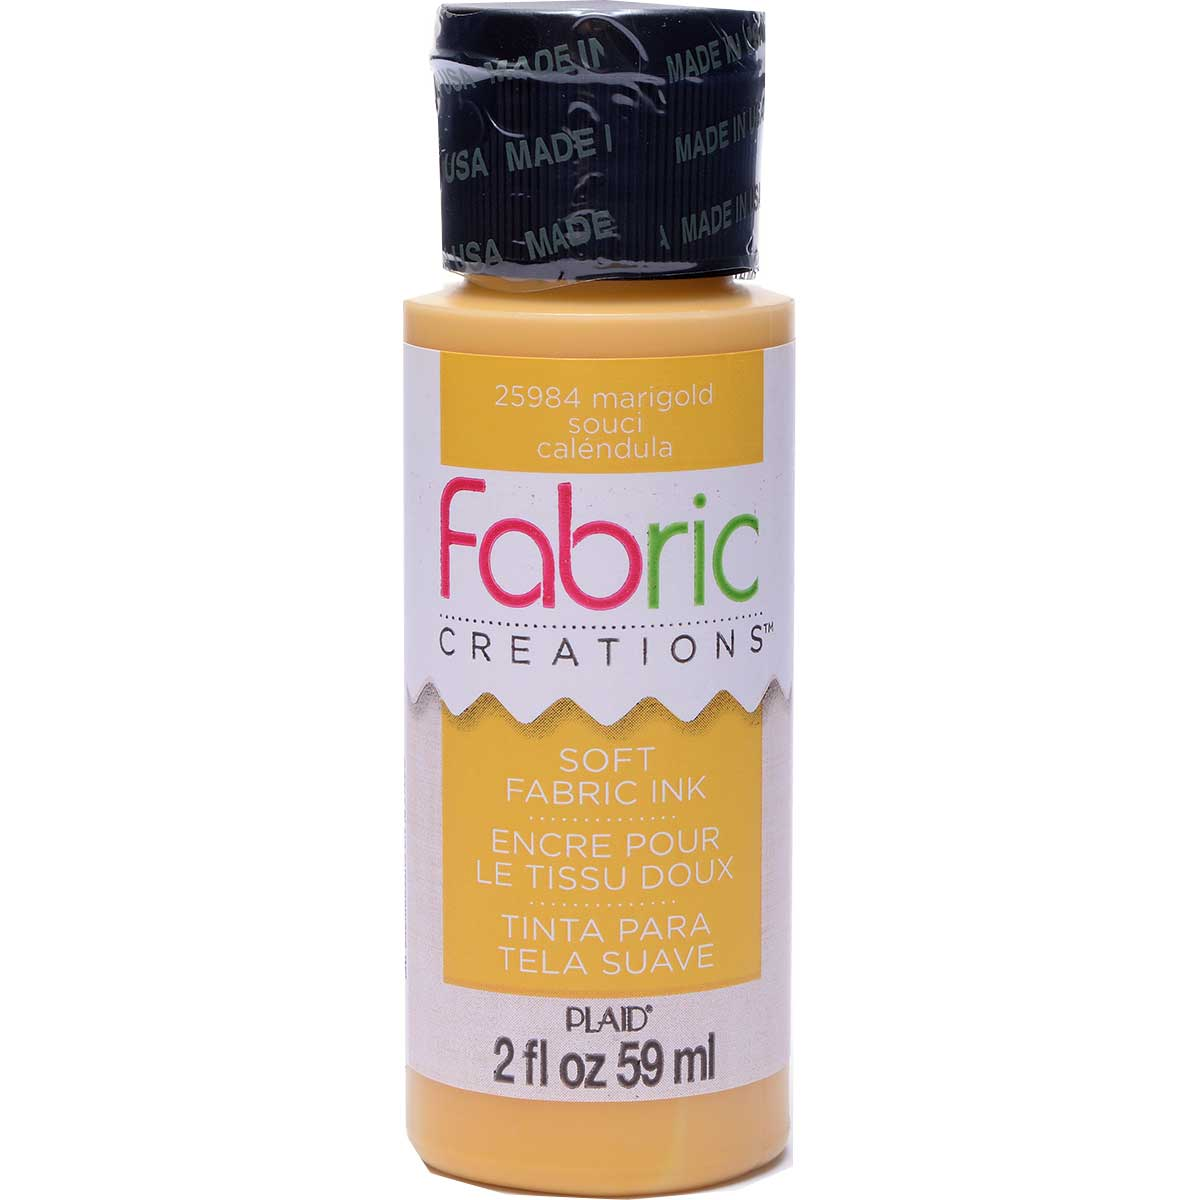 Fabric Creations™ Soft Fabric Inks - Marigold, 2 oz.